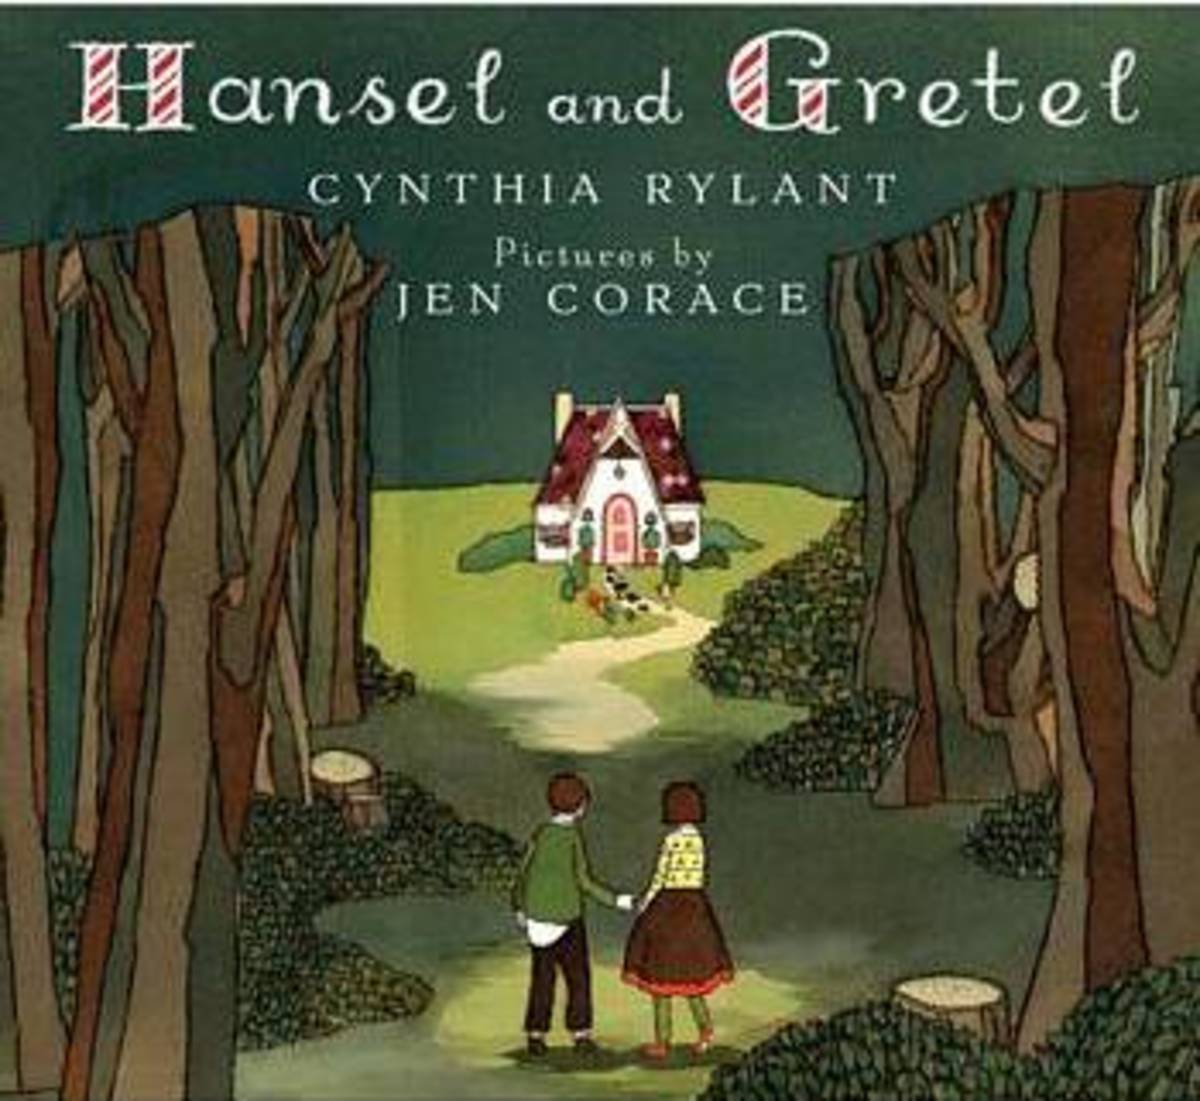 This version of the Hansel and Gretel story is 40 pages long!